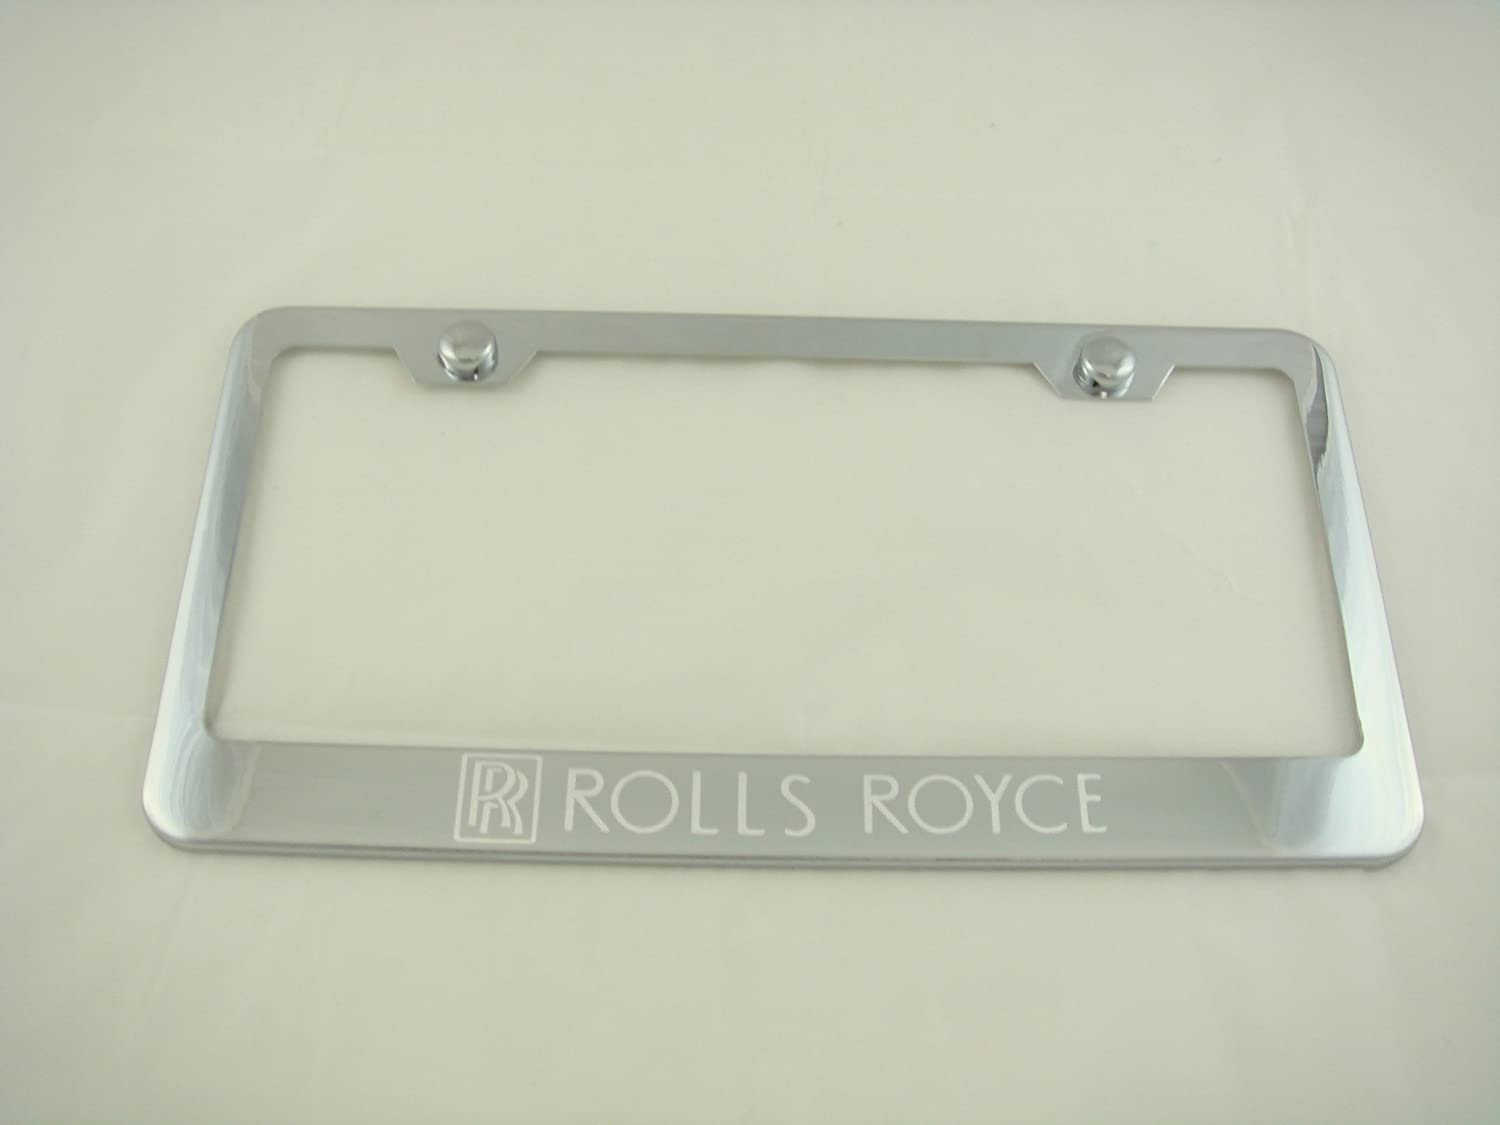 Fit Rolls Royce Polished Stainless Steel License Plate Frame with Caps